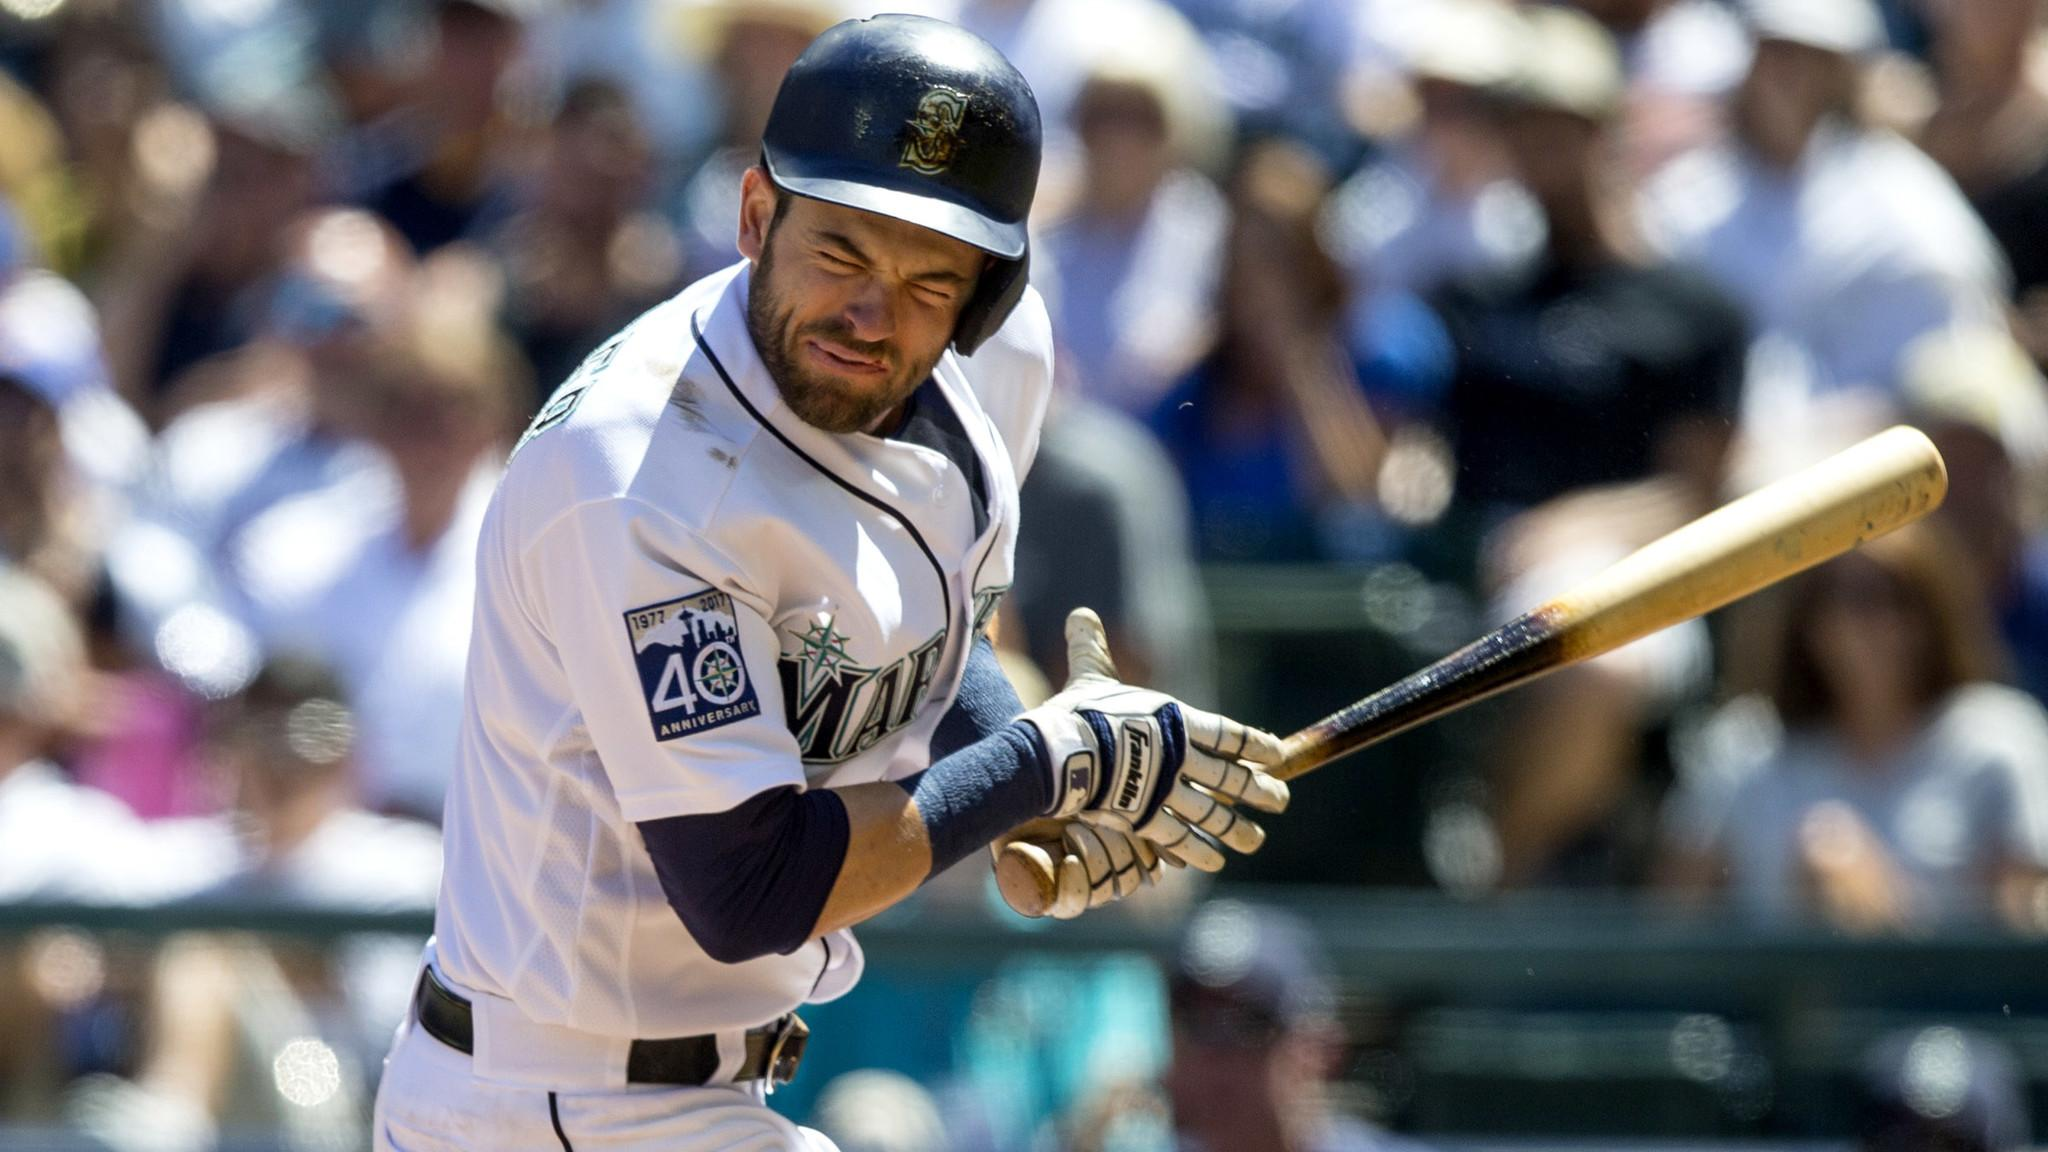 Mariners' Mitch Haniger hits in the face by a pitch